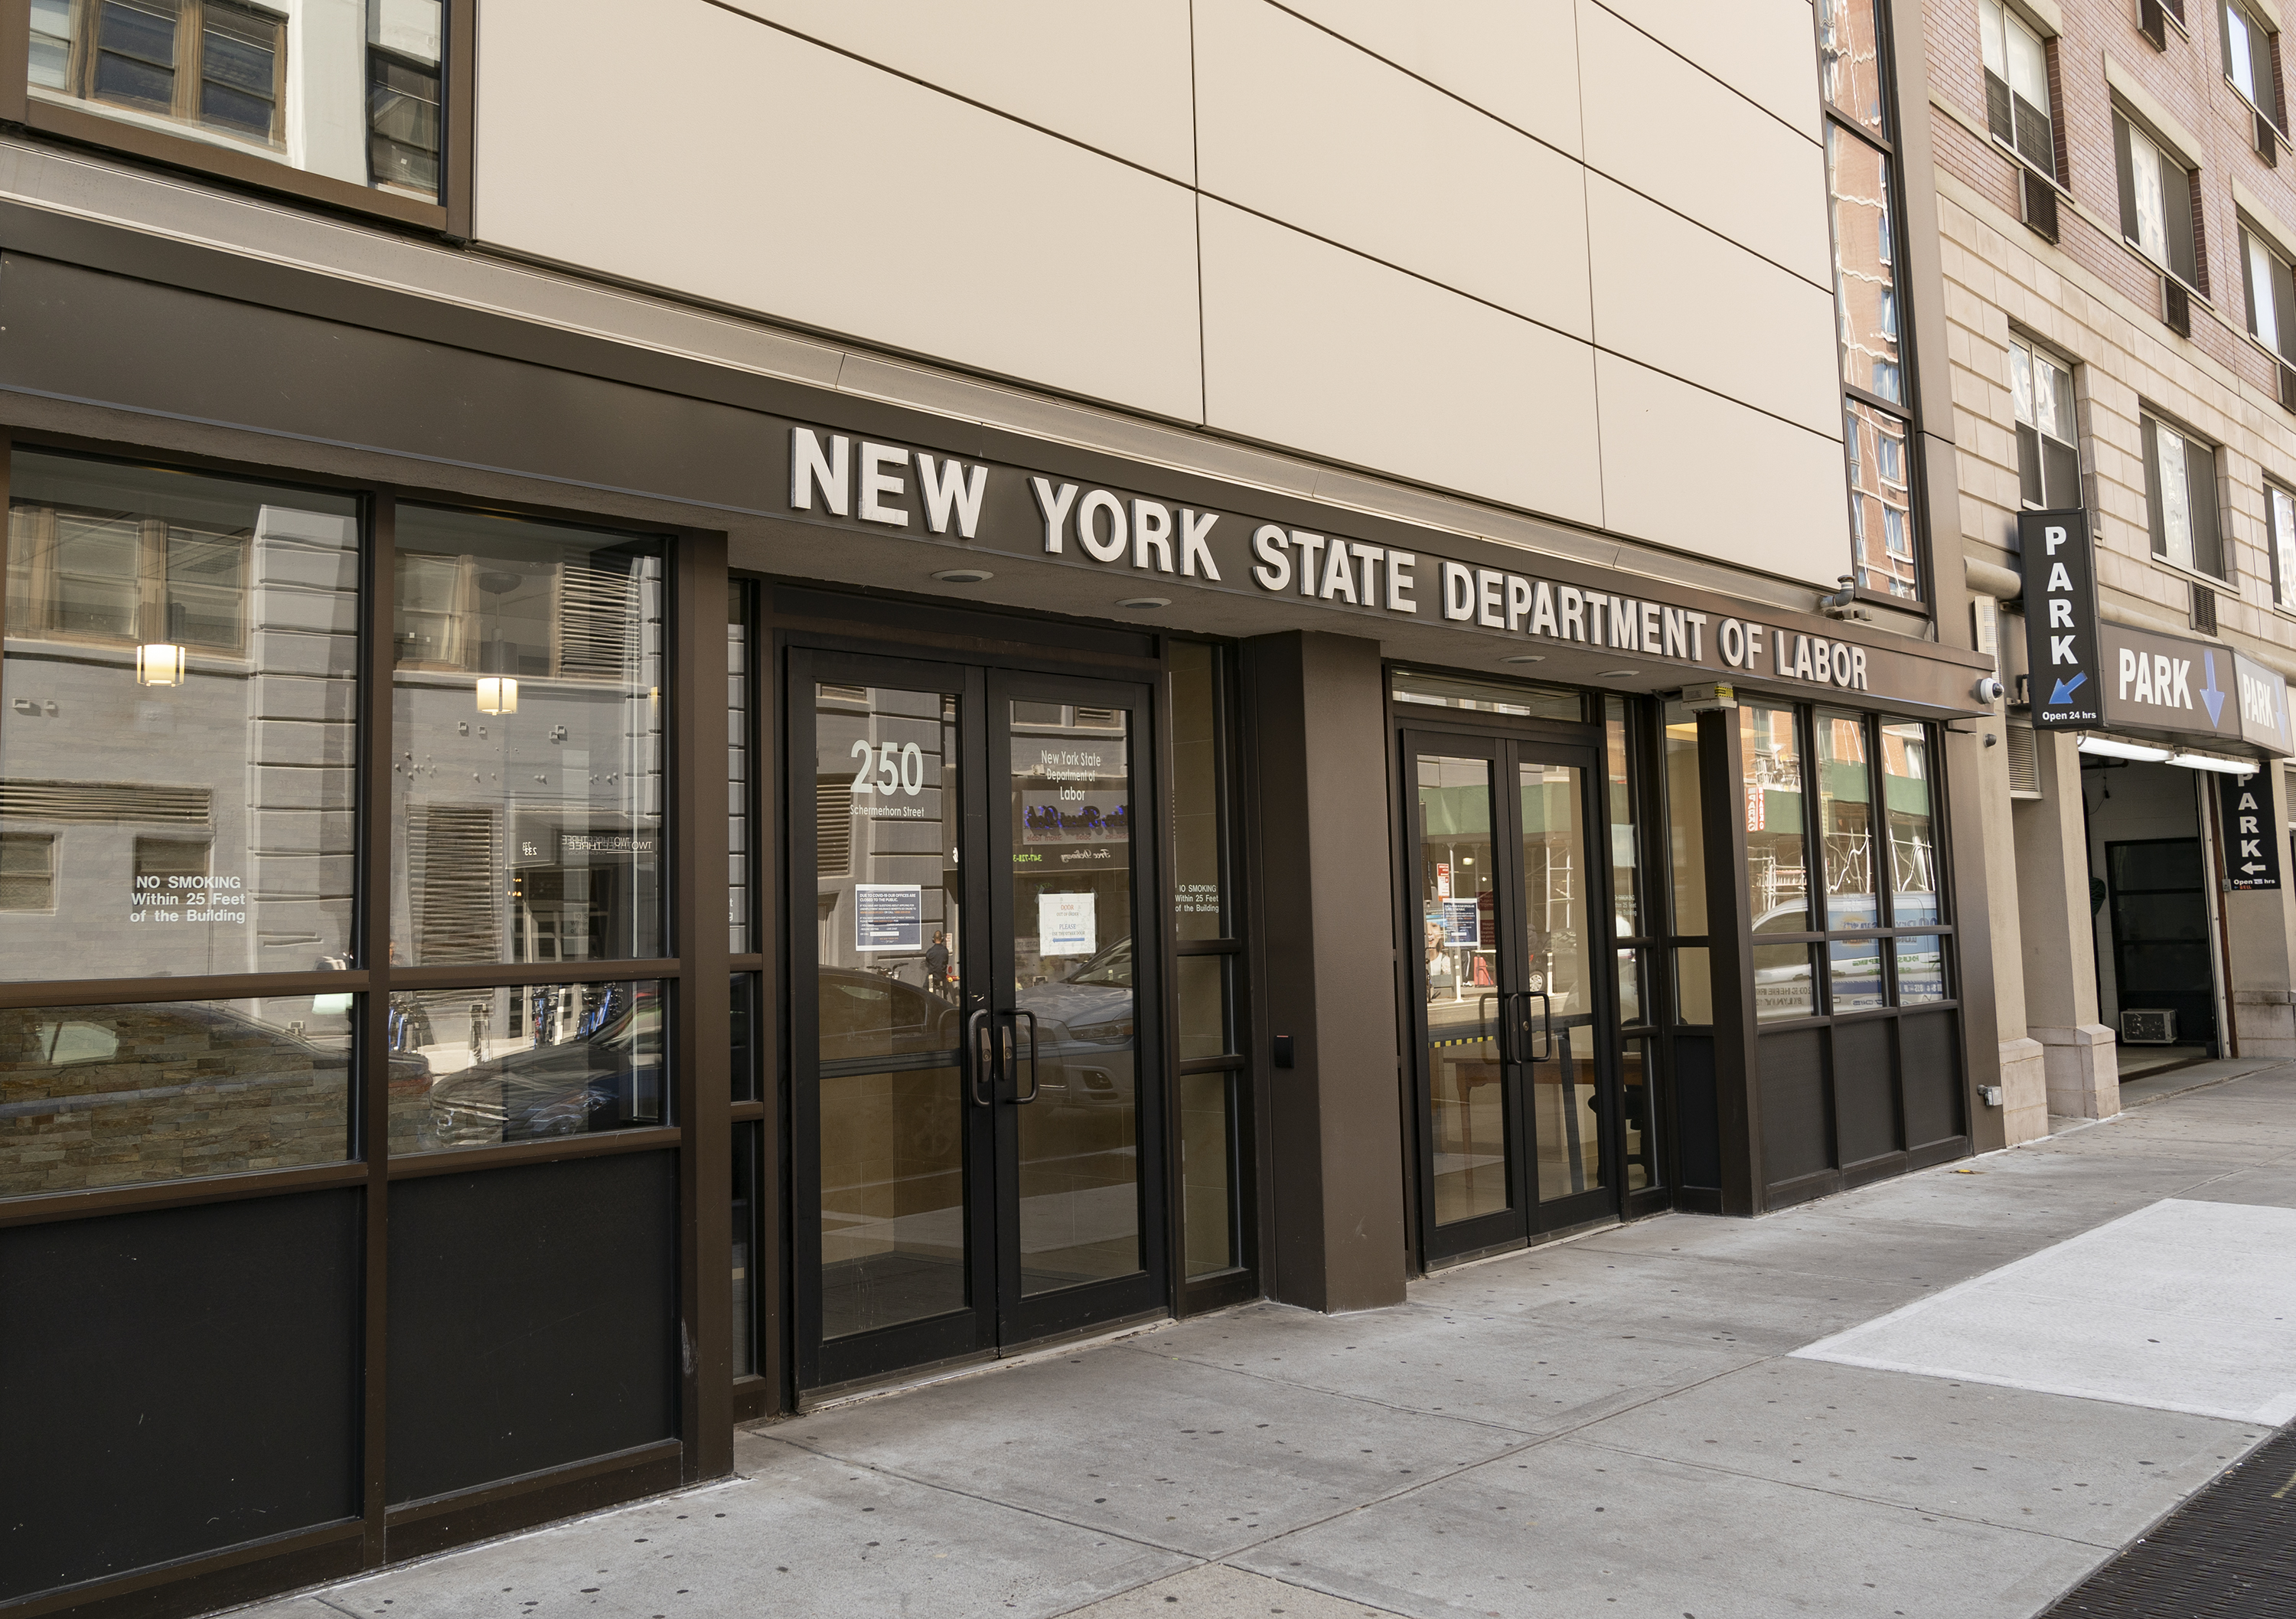 The Brooklyn office of the New York State Department of Labor on March 26, 2020. A sign on the door said the office was closed due to COVID-19 and told people seeking unemployment benefits to apply online or call.